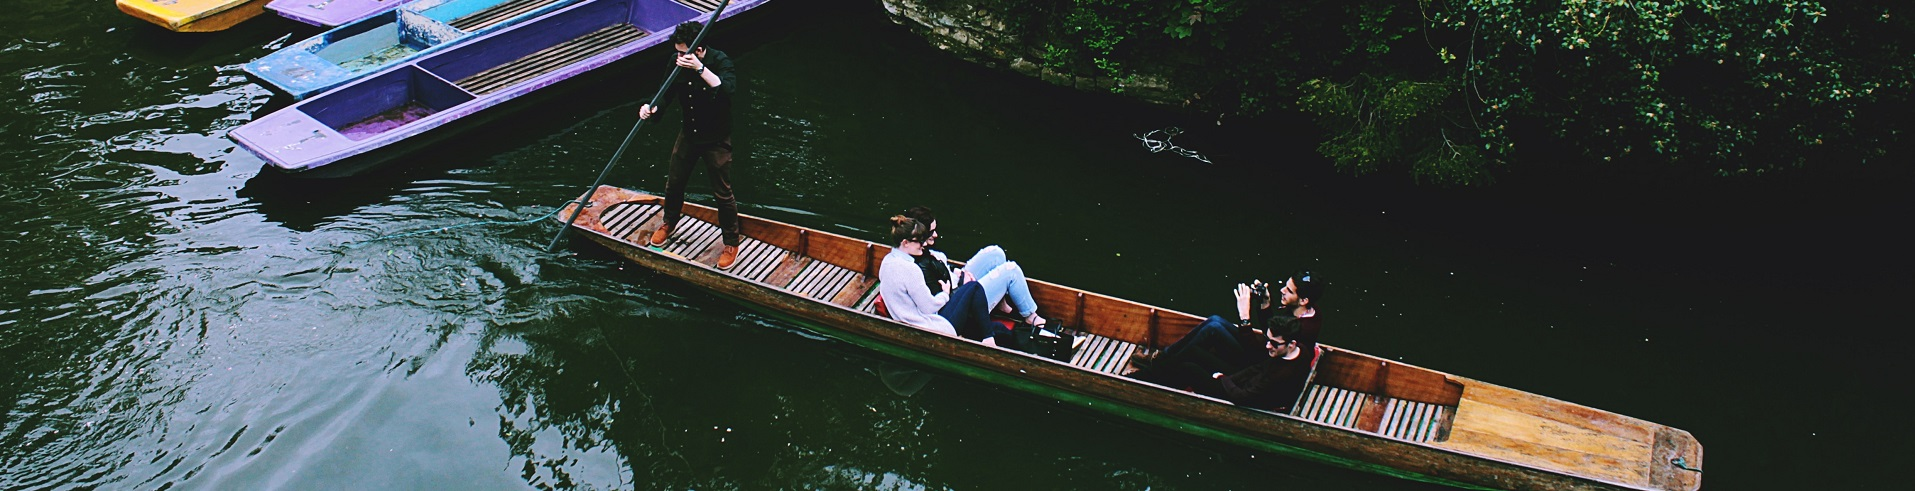 The history of punting